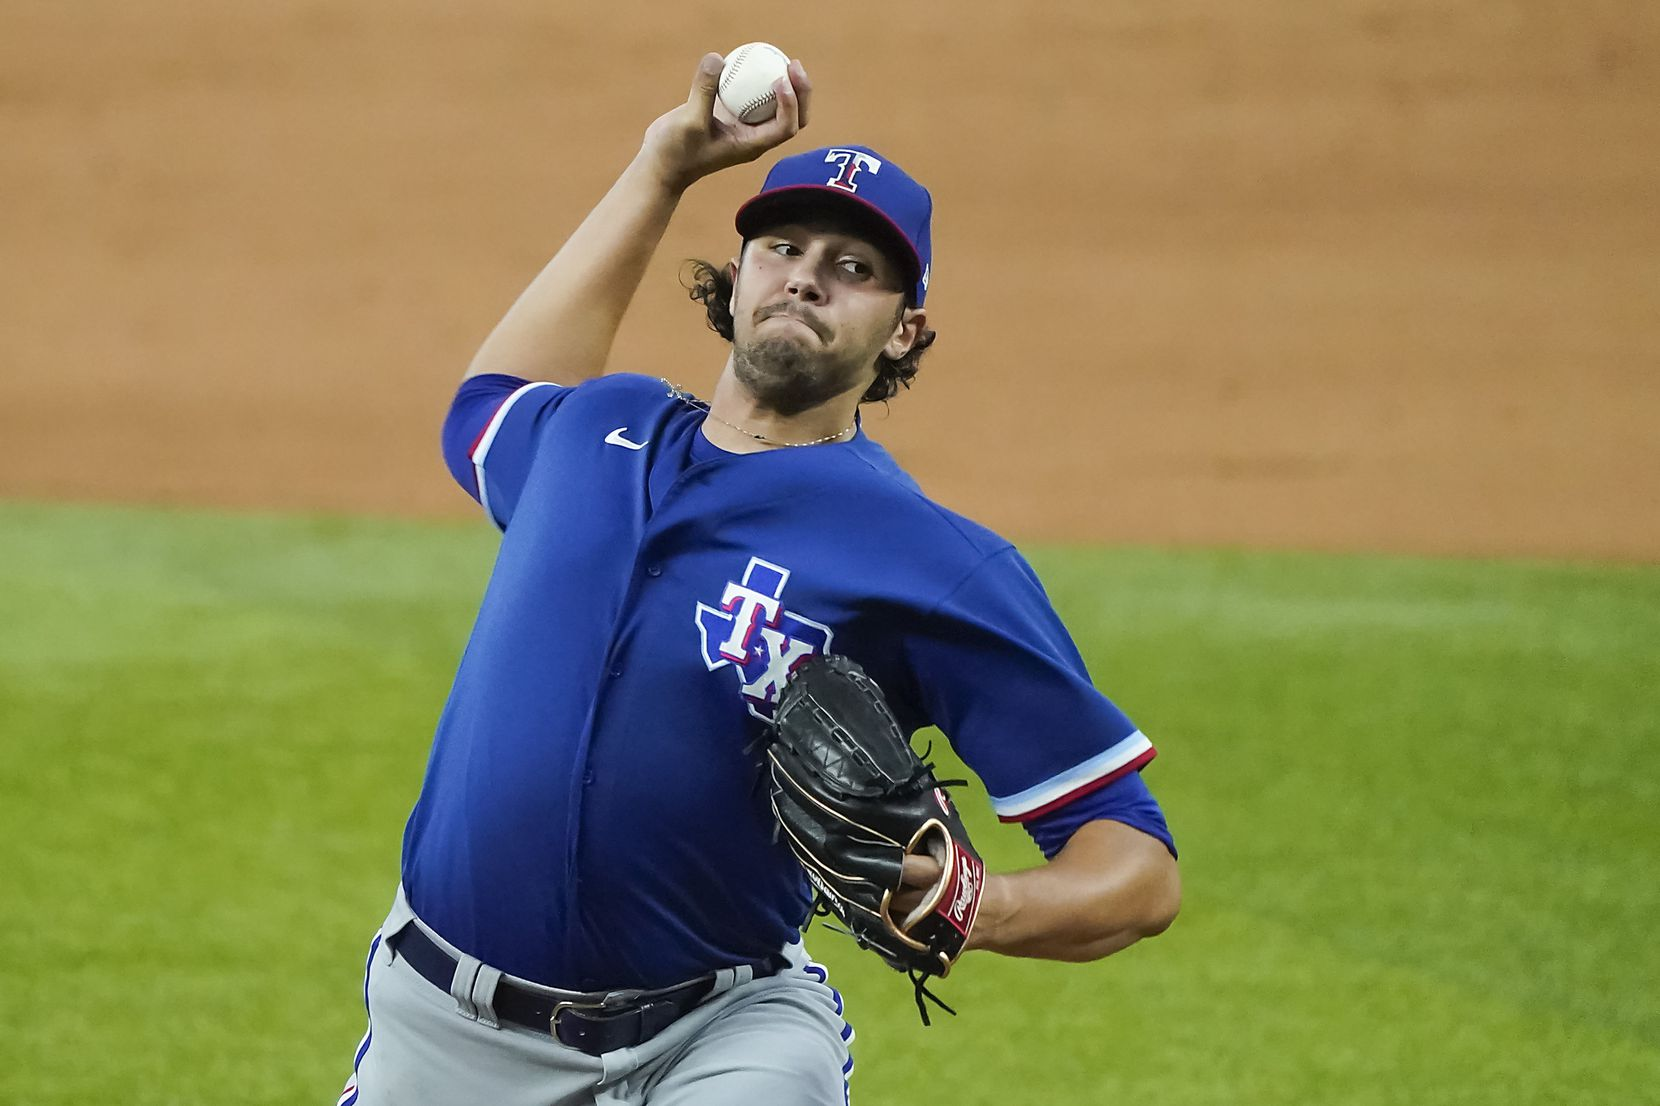 Texas Rangers pitcher Tyler Phillips delivers during a game between players at the team's alternate training site at Globe Life Field on Saturday, Sept. 19, 2020. (Smiley N. Pool/The Dallas Morning News)